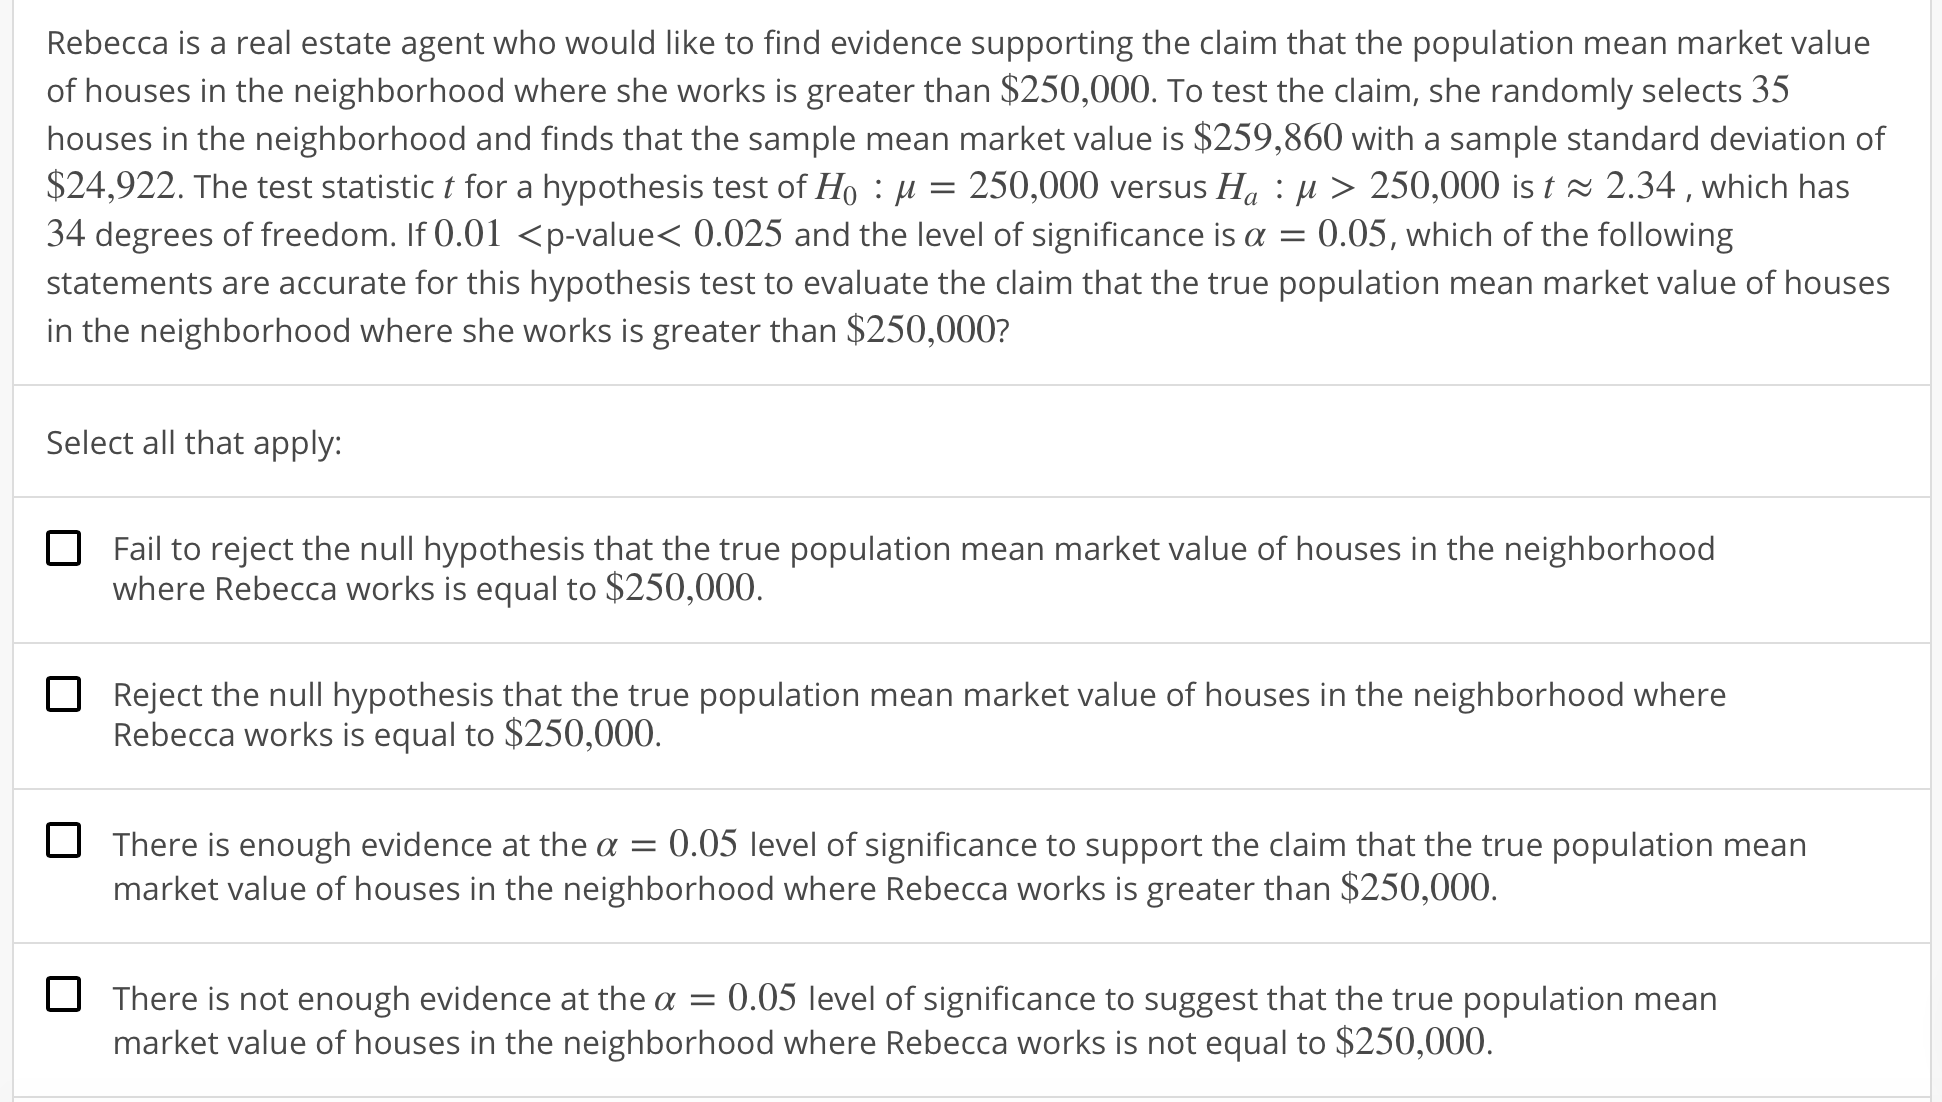 Rebecca is a real estate agent who would like to find evidence supporting the claim that the population mean market value of houses in the neighborhood where she works is greater than $250,000. To test the claim, she randomly selects 35 houses in the neighborhood and finds that the sample mean market value is $259,860 with a sample standard deviation of $24,922. The test statistic t for a hypothesis test of Ho : μ = 250,000 versus Ha : μ 〉 250,000 is t 2.34 , which has 34 degrees of freedom. If 0.01 <p-value< 0.025 and the level of significance is α-0.05, which of the following statements are accurate for this hypothesis test to evaluate the claim that the true population mean market value of houses in the neighborhood where she works is greater than $250,000? Select all that apply: O Fail to reject the null hypothesis that the true population mean market value of houses in the neighborhood where Rebecca works is equal to $250,000 Reject the null hypothesis that the true population mean market value of houses in the neighborhood where Rebecca works is equal to $250,000 There is enough evidence at the a 0.05 level of significance to support the claim that the true population mean market value of houses in the neighborhood where Rebecca works is greater than $250,000. There is not enough evidence at the α-0.05 level of significance to suggest that the true population mean market value of houses in the neighborhood where Rebecca works is not equal to $250,000.